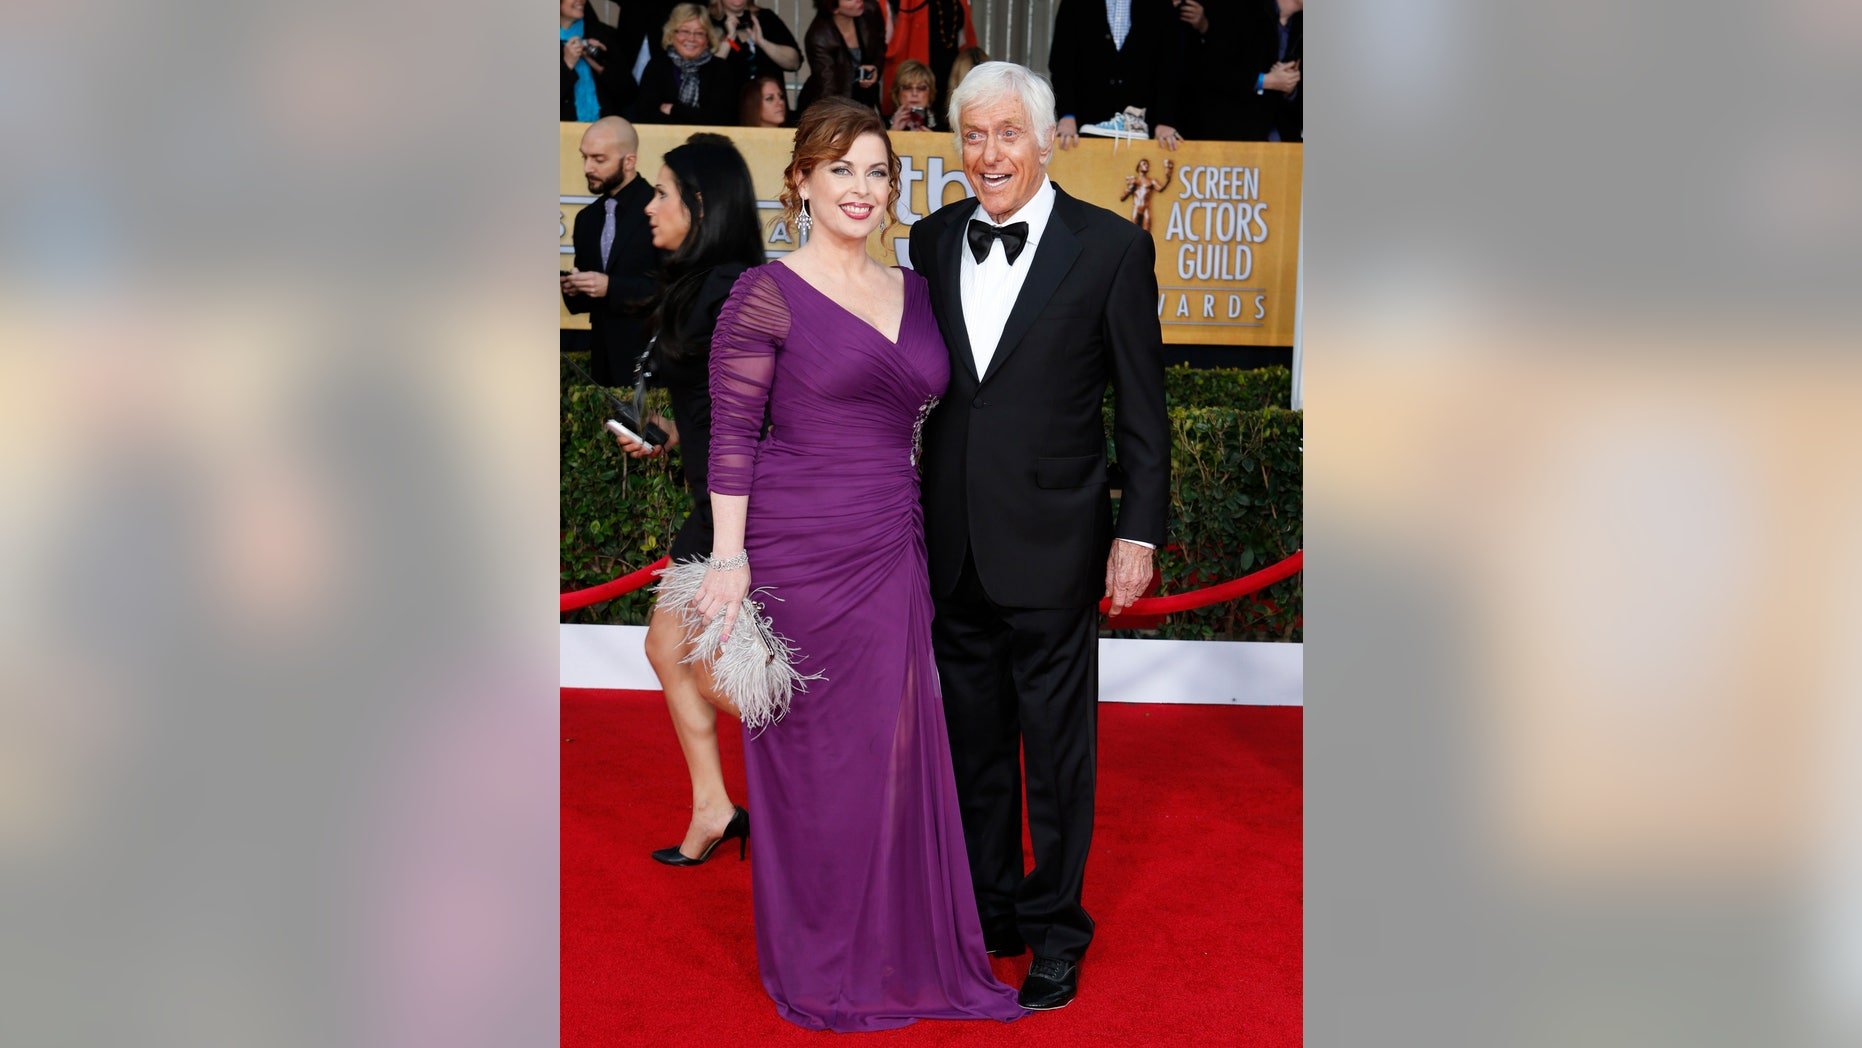 January 27, 2013. Dick Van Dyke and his wife Arlene arrive at the 19th annual Screen Actors Guild Awards in Los Angeles, California.